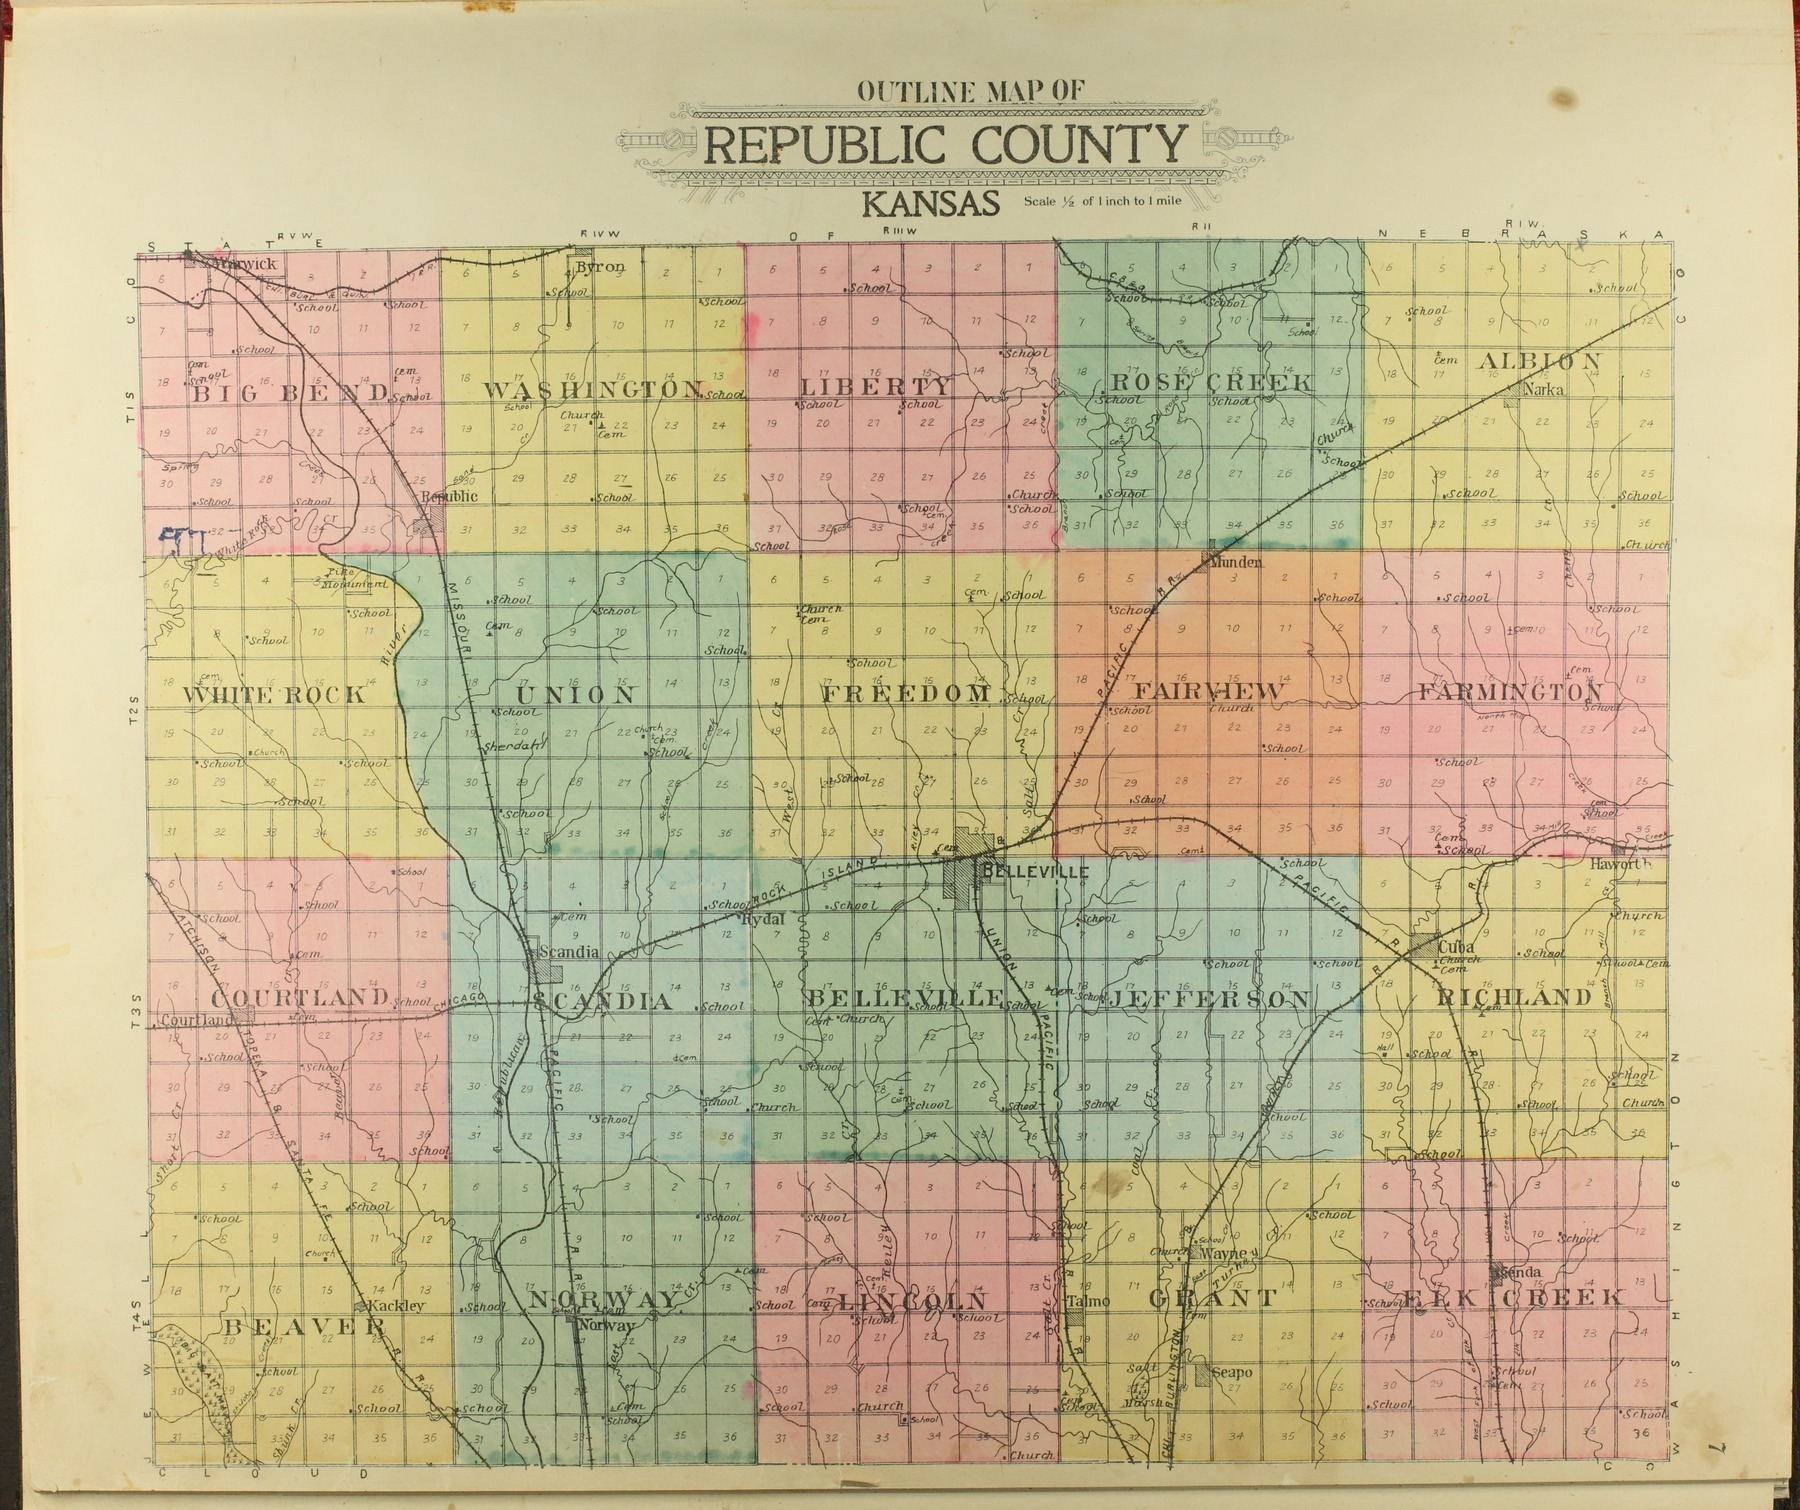 Standard atlas of Republic County, Kansas - 7